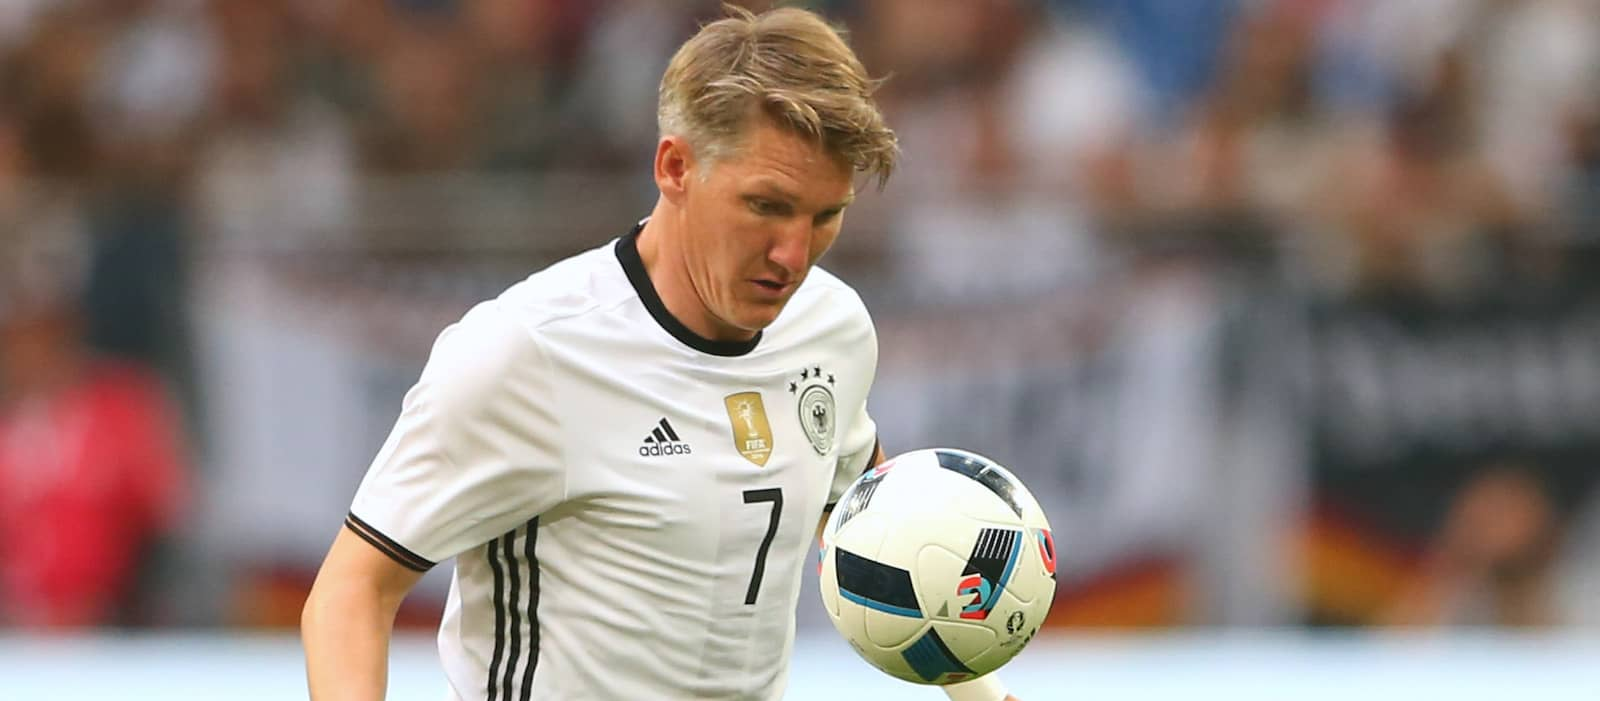 Michael Ballack: Bastian Schweinsteiger deserves better than Man United treatment